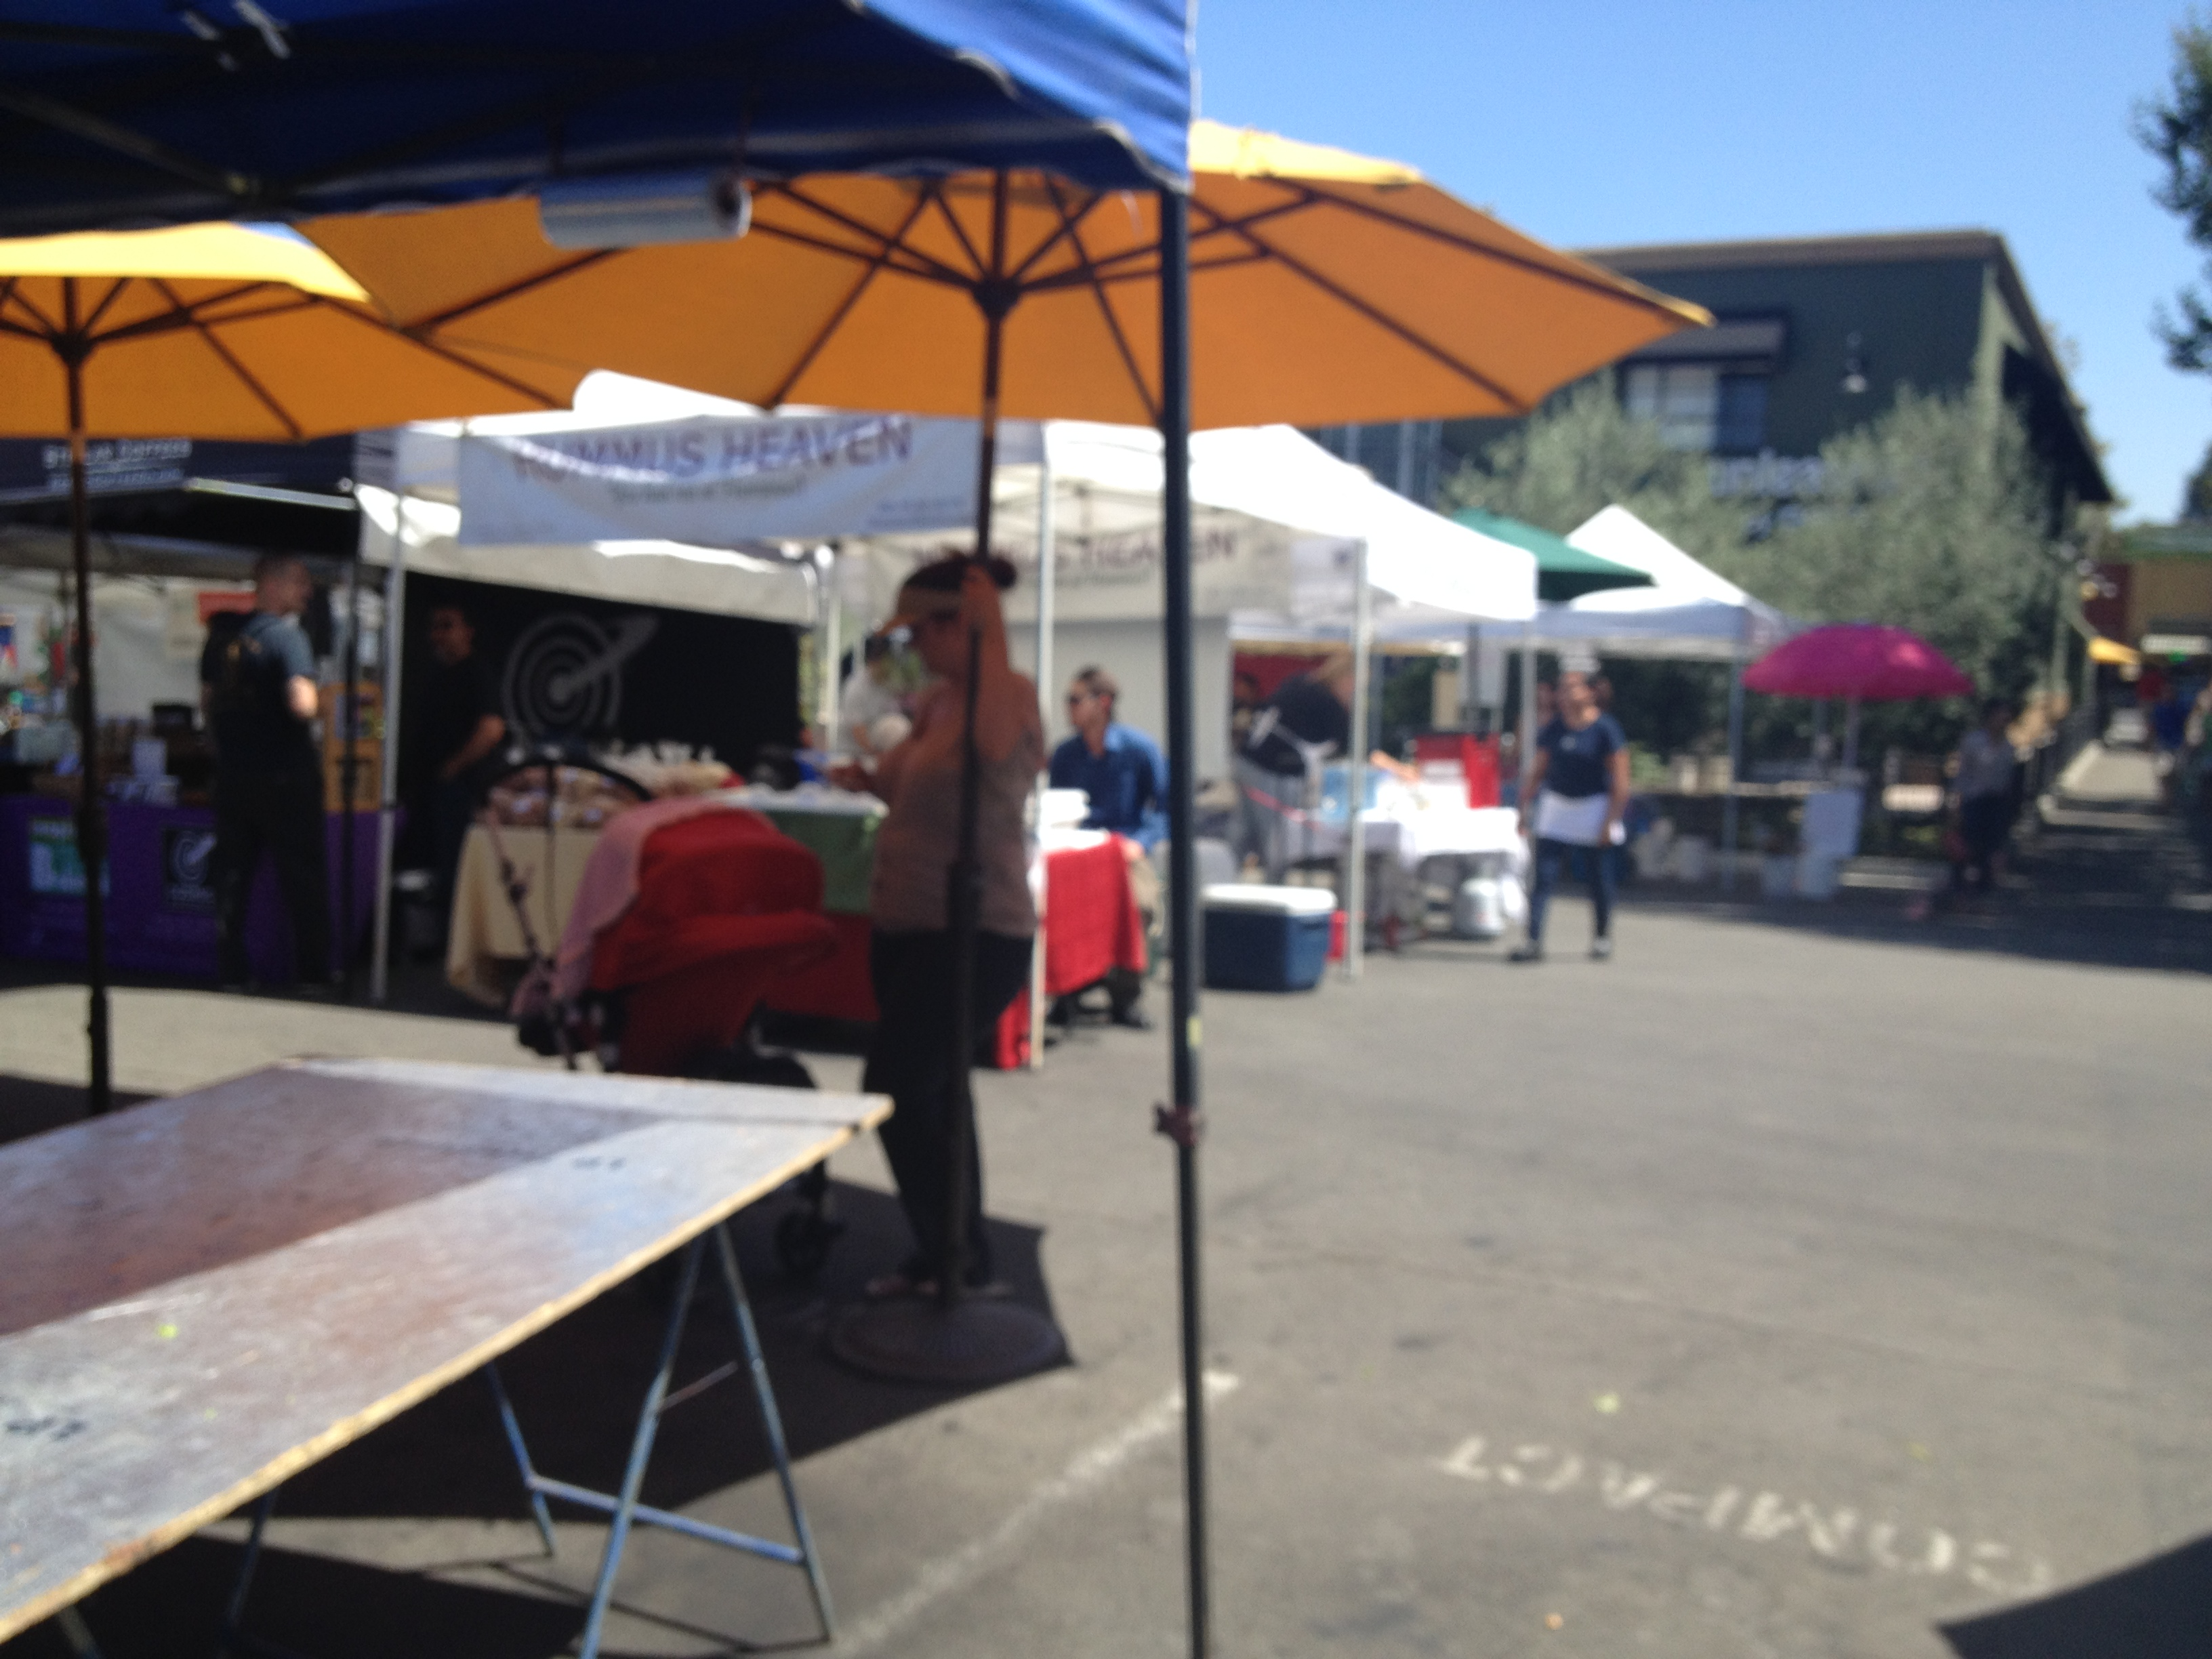 Round Table Capitol Expressway Campbells Farmers Market Continues To Shame Nearby Willow Glens